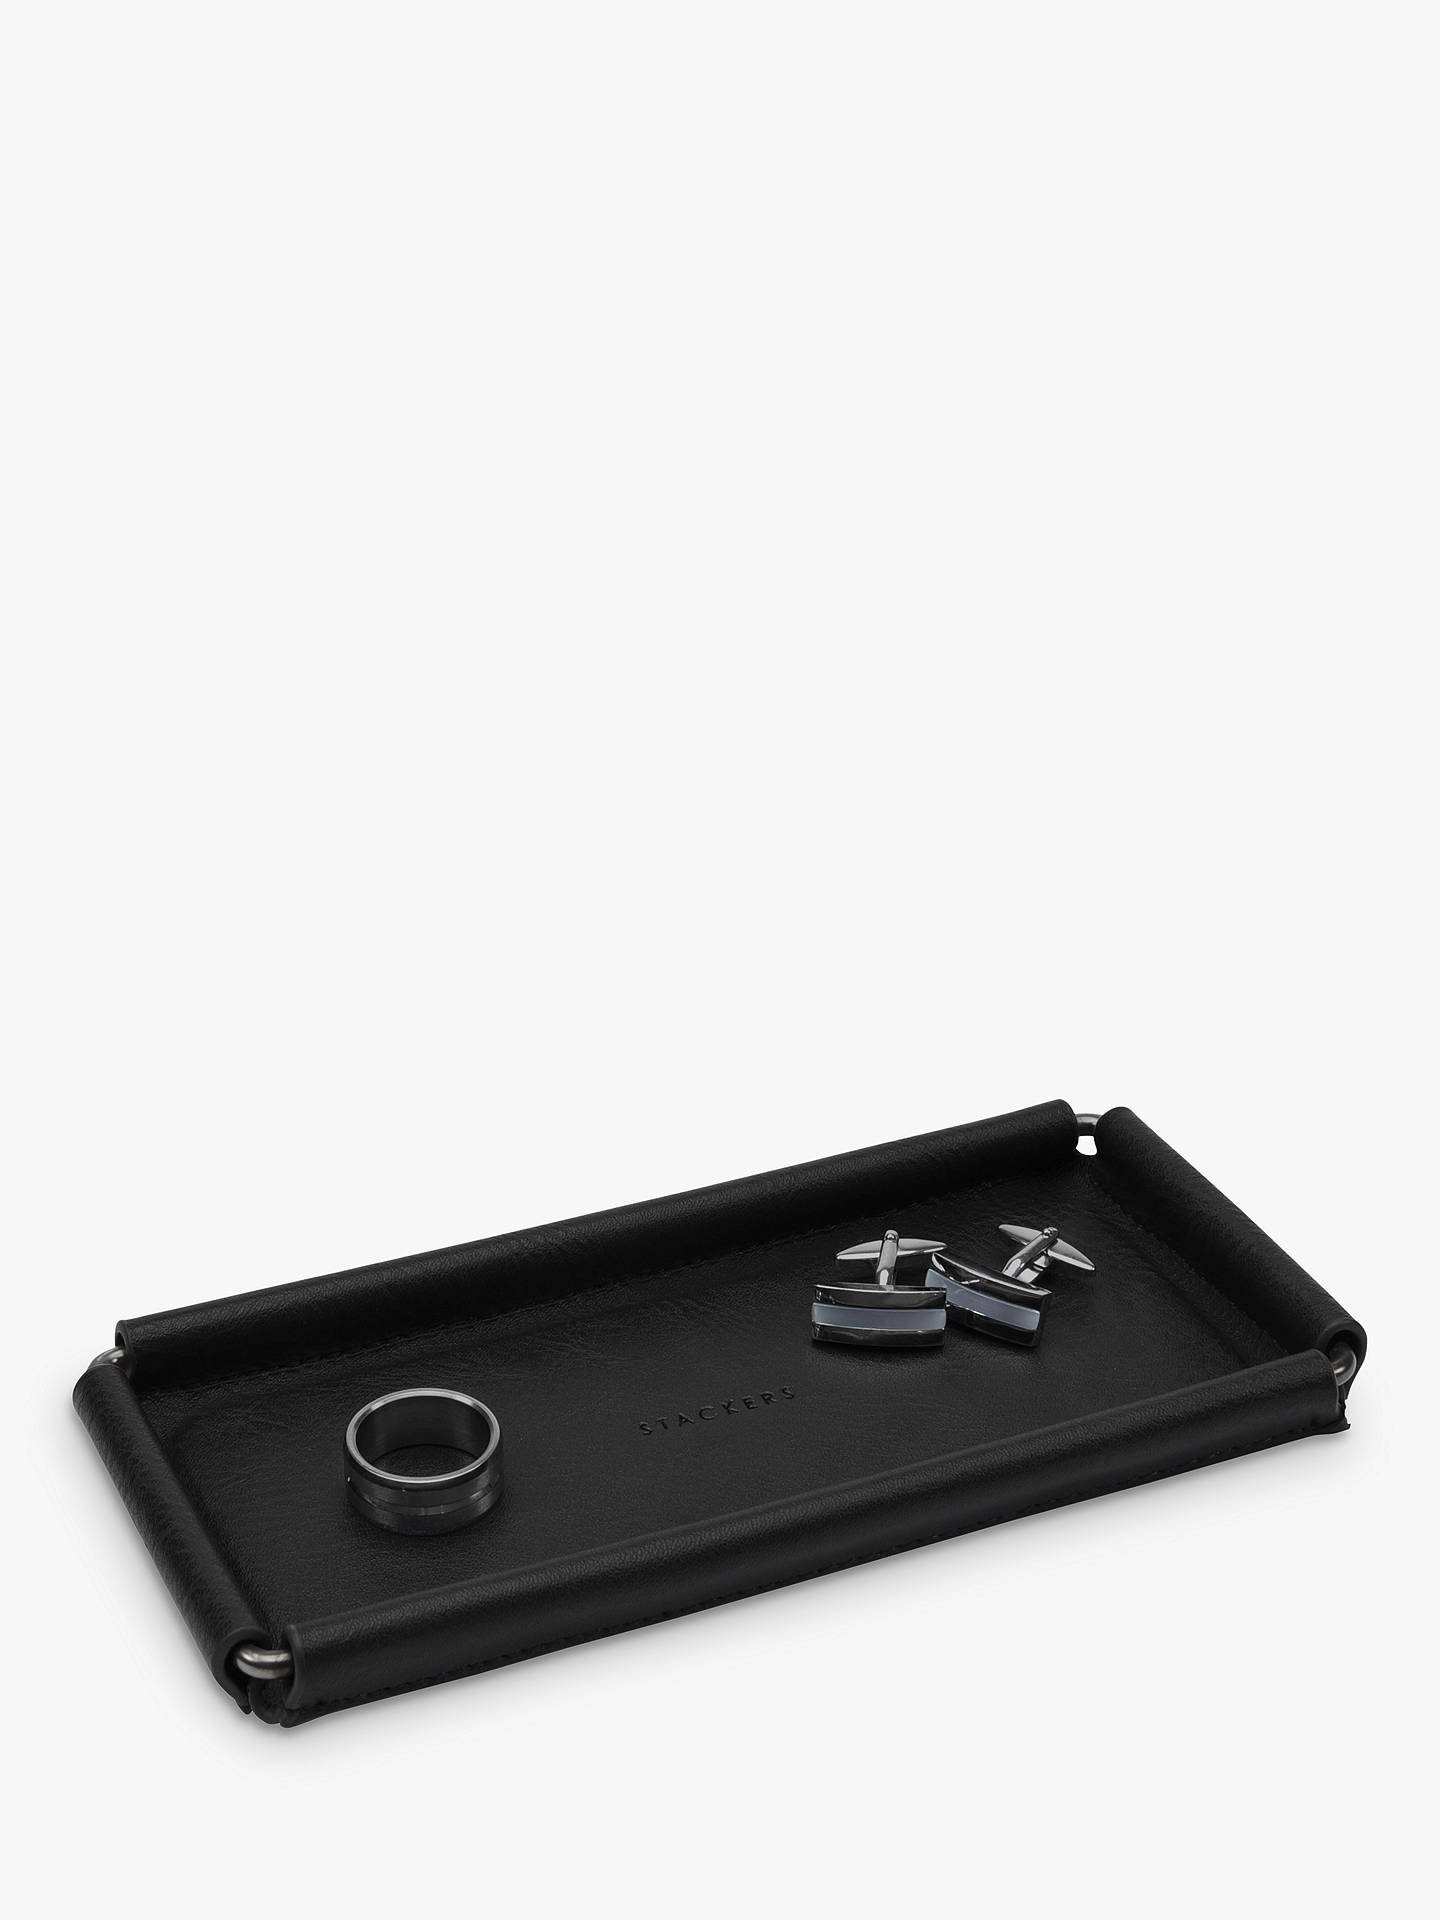 BuyStackers Catchall, Black Gunmetal Online at johnlewis.com